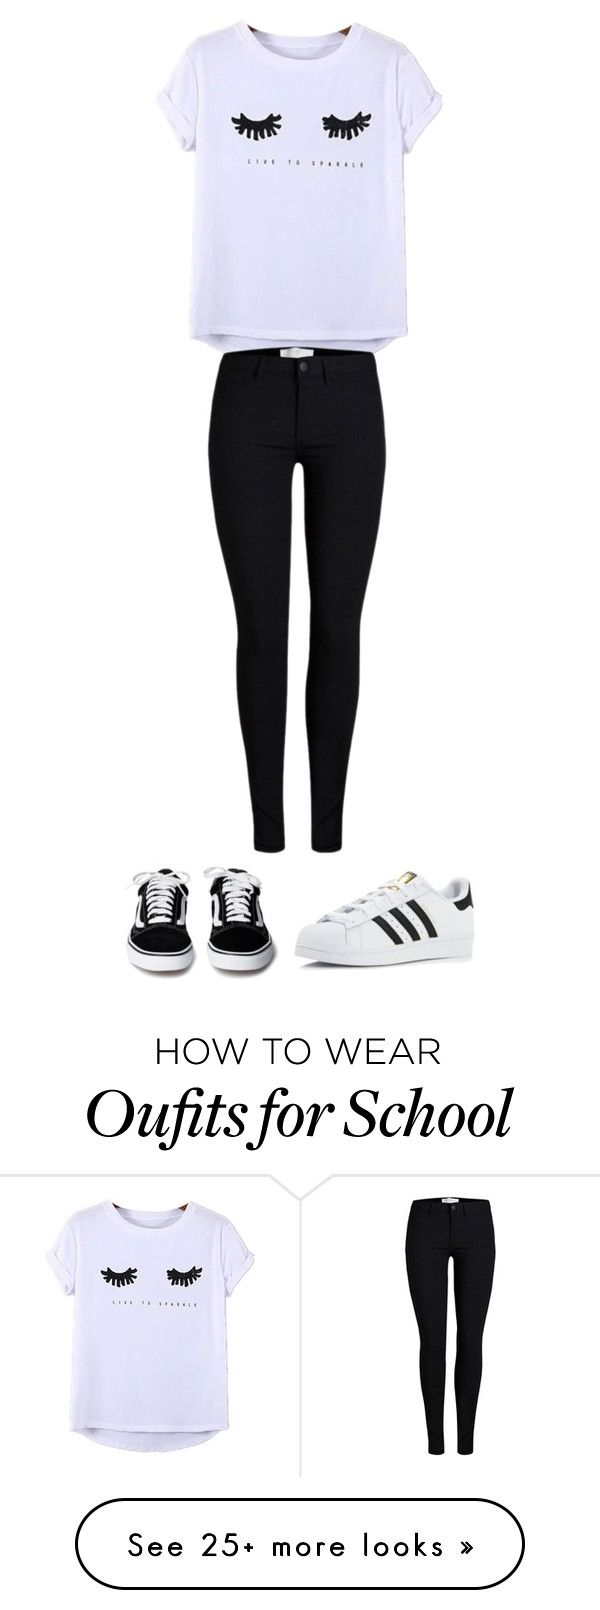 """This is perfect outfit for school"" by nikica-bobnar on Polyvore featuring Chicnova Fashion and adidas"